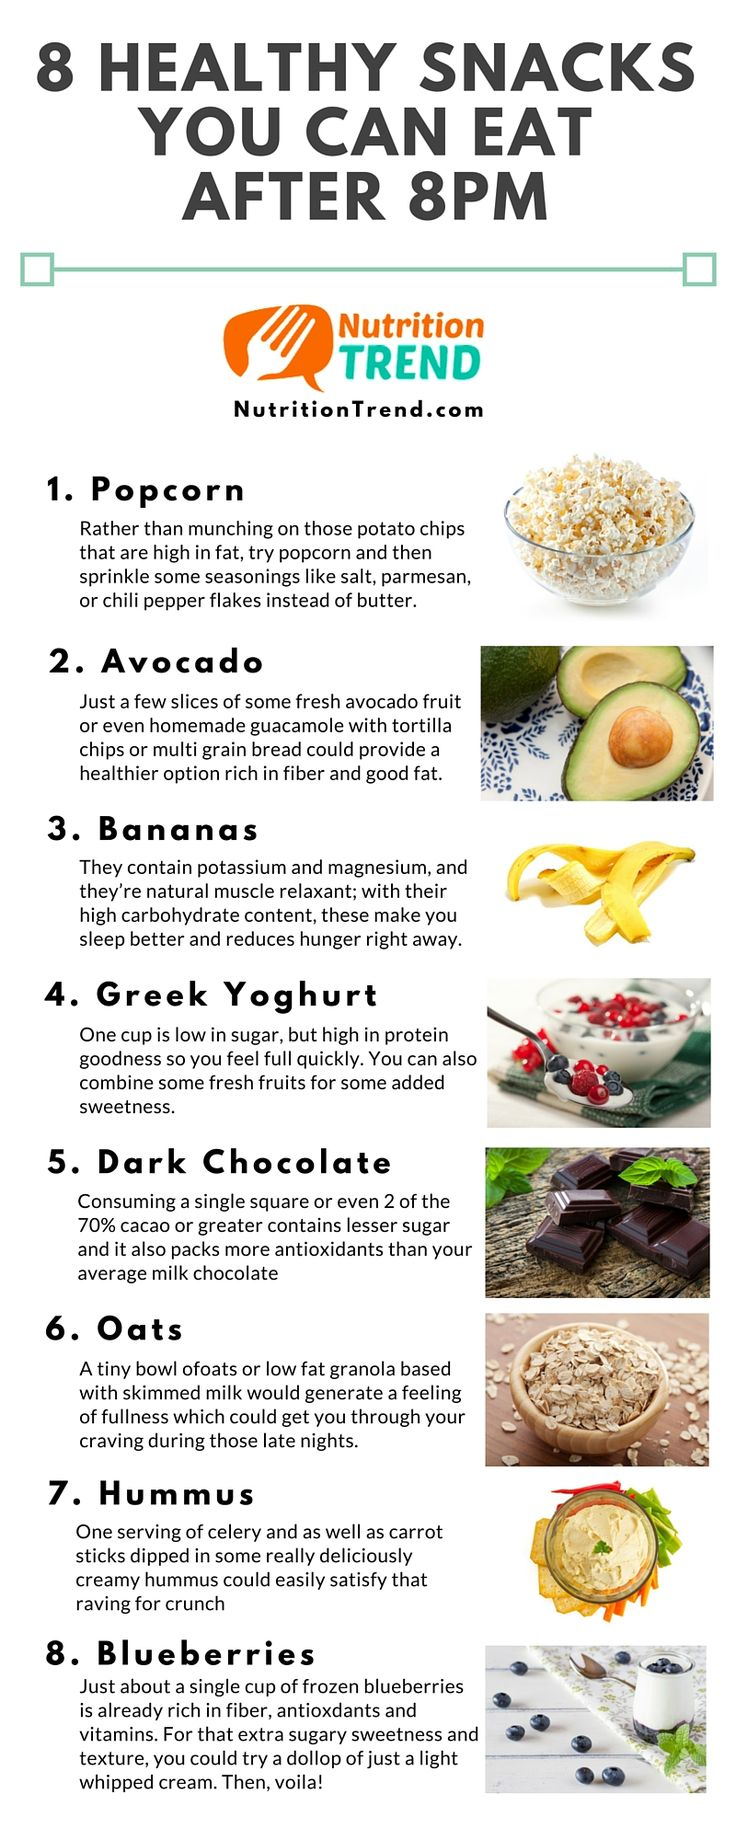 Late night snacking over time can lead to weight gain. Get control of your cravings and weight with these 8 fantastic snack options.